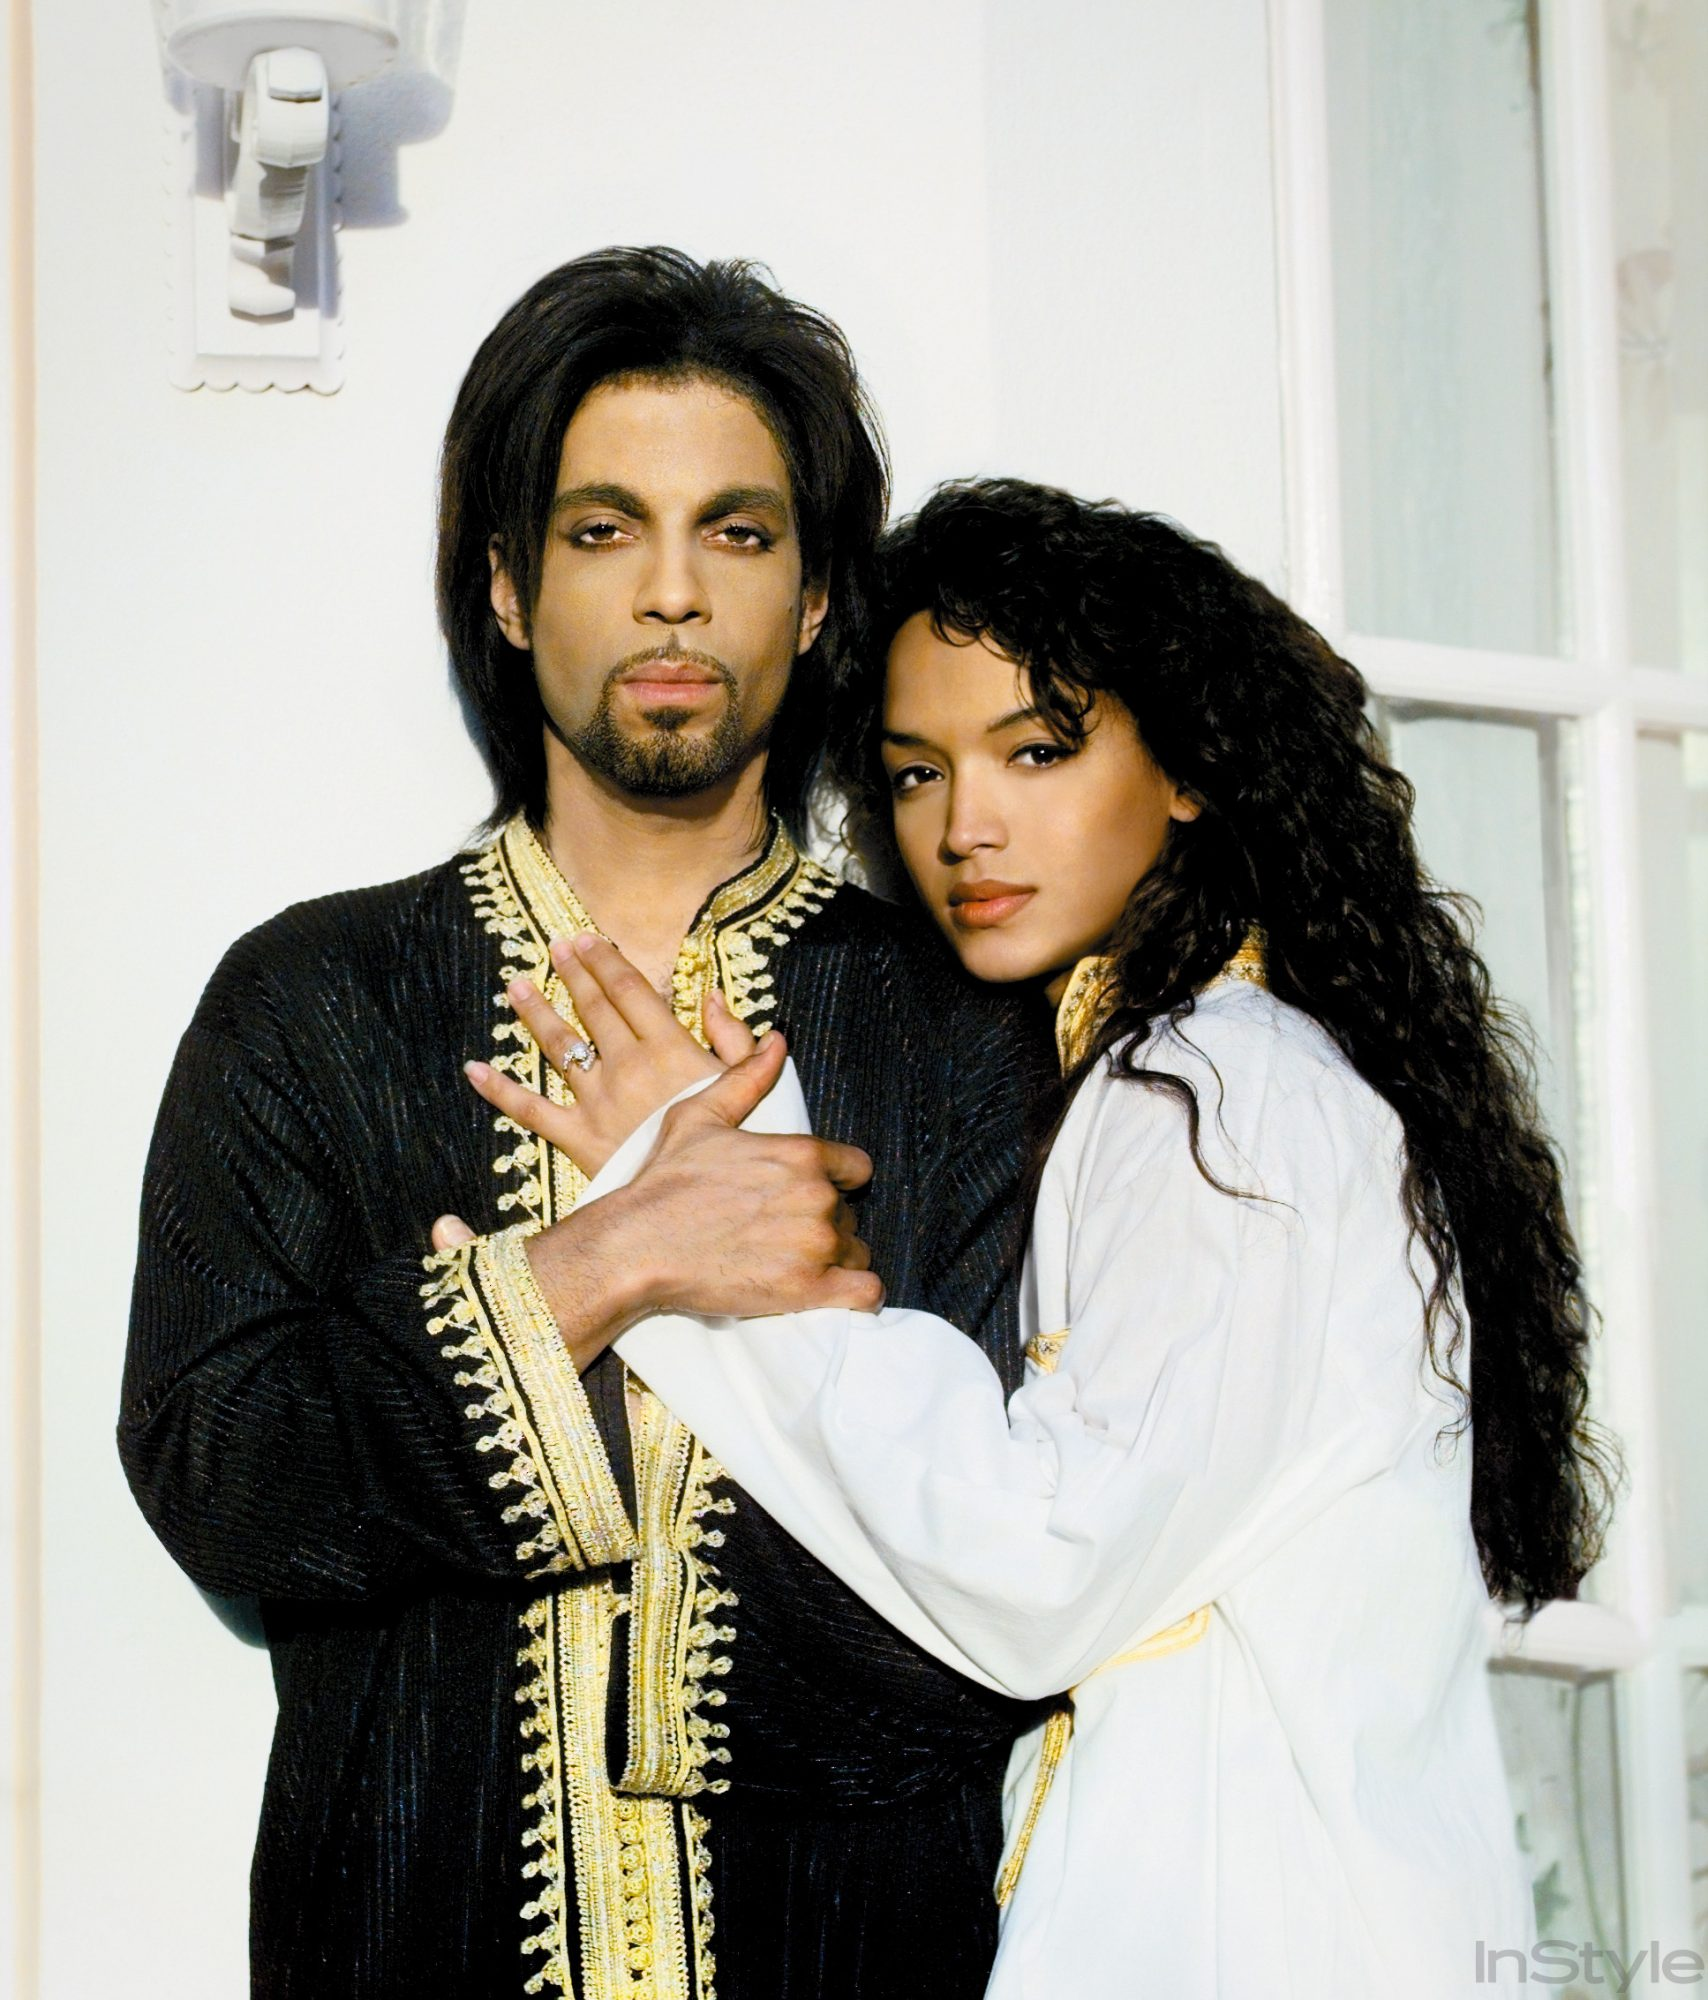 <p>Prince and Then-Partner Mayte Garcia in Their Marbella Villa</p>